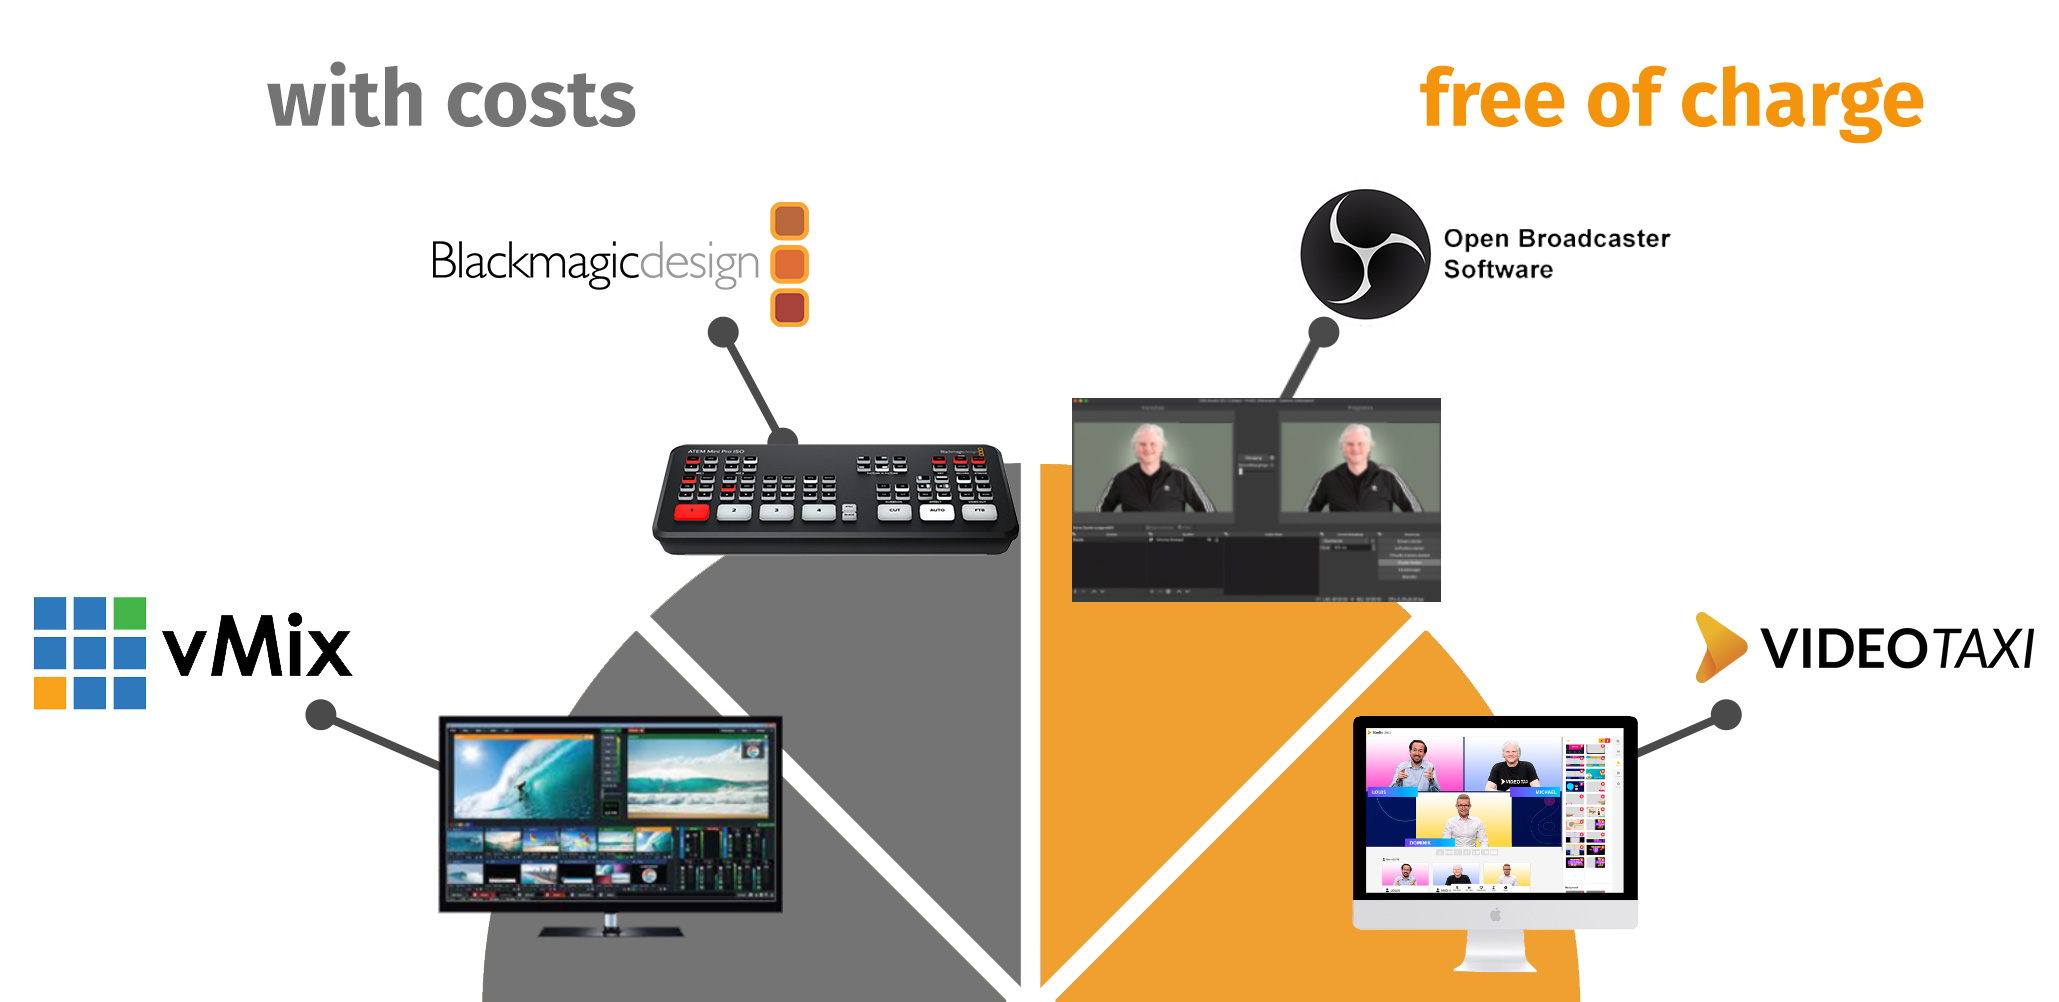 Video.Taxi with Open Broadcaster Software, vMix, Blackmagicdesign